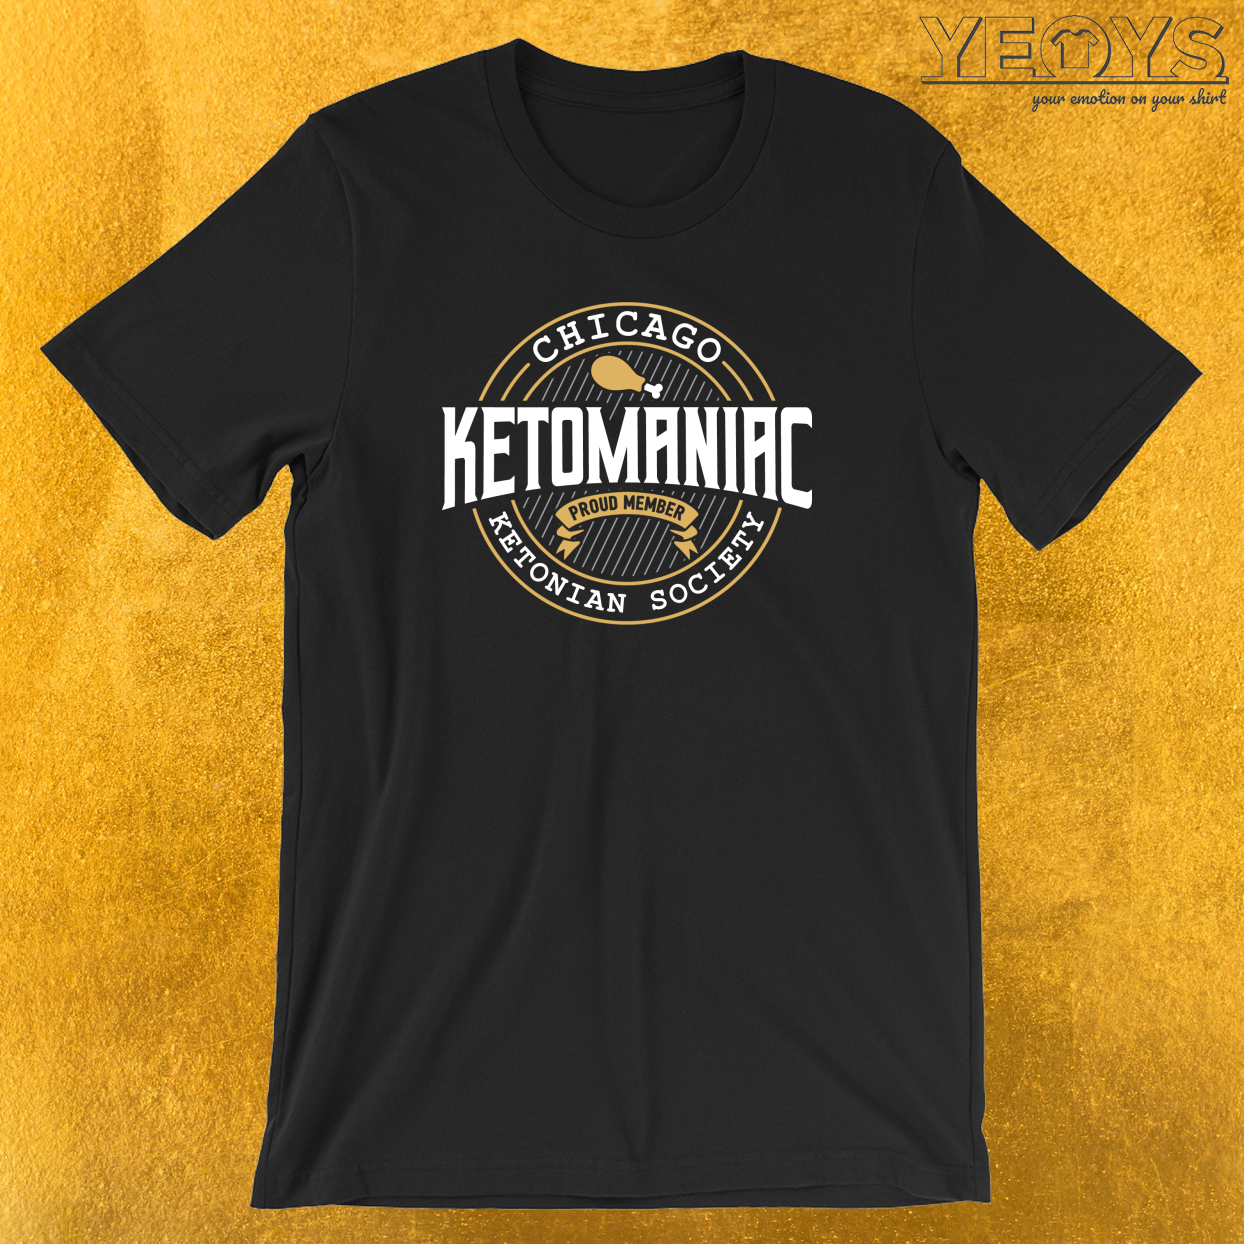 Ketomaniac Member Of Chicagos's Ketonians Society T-Shirt